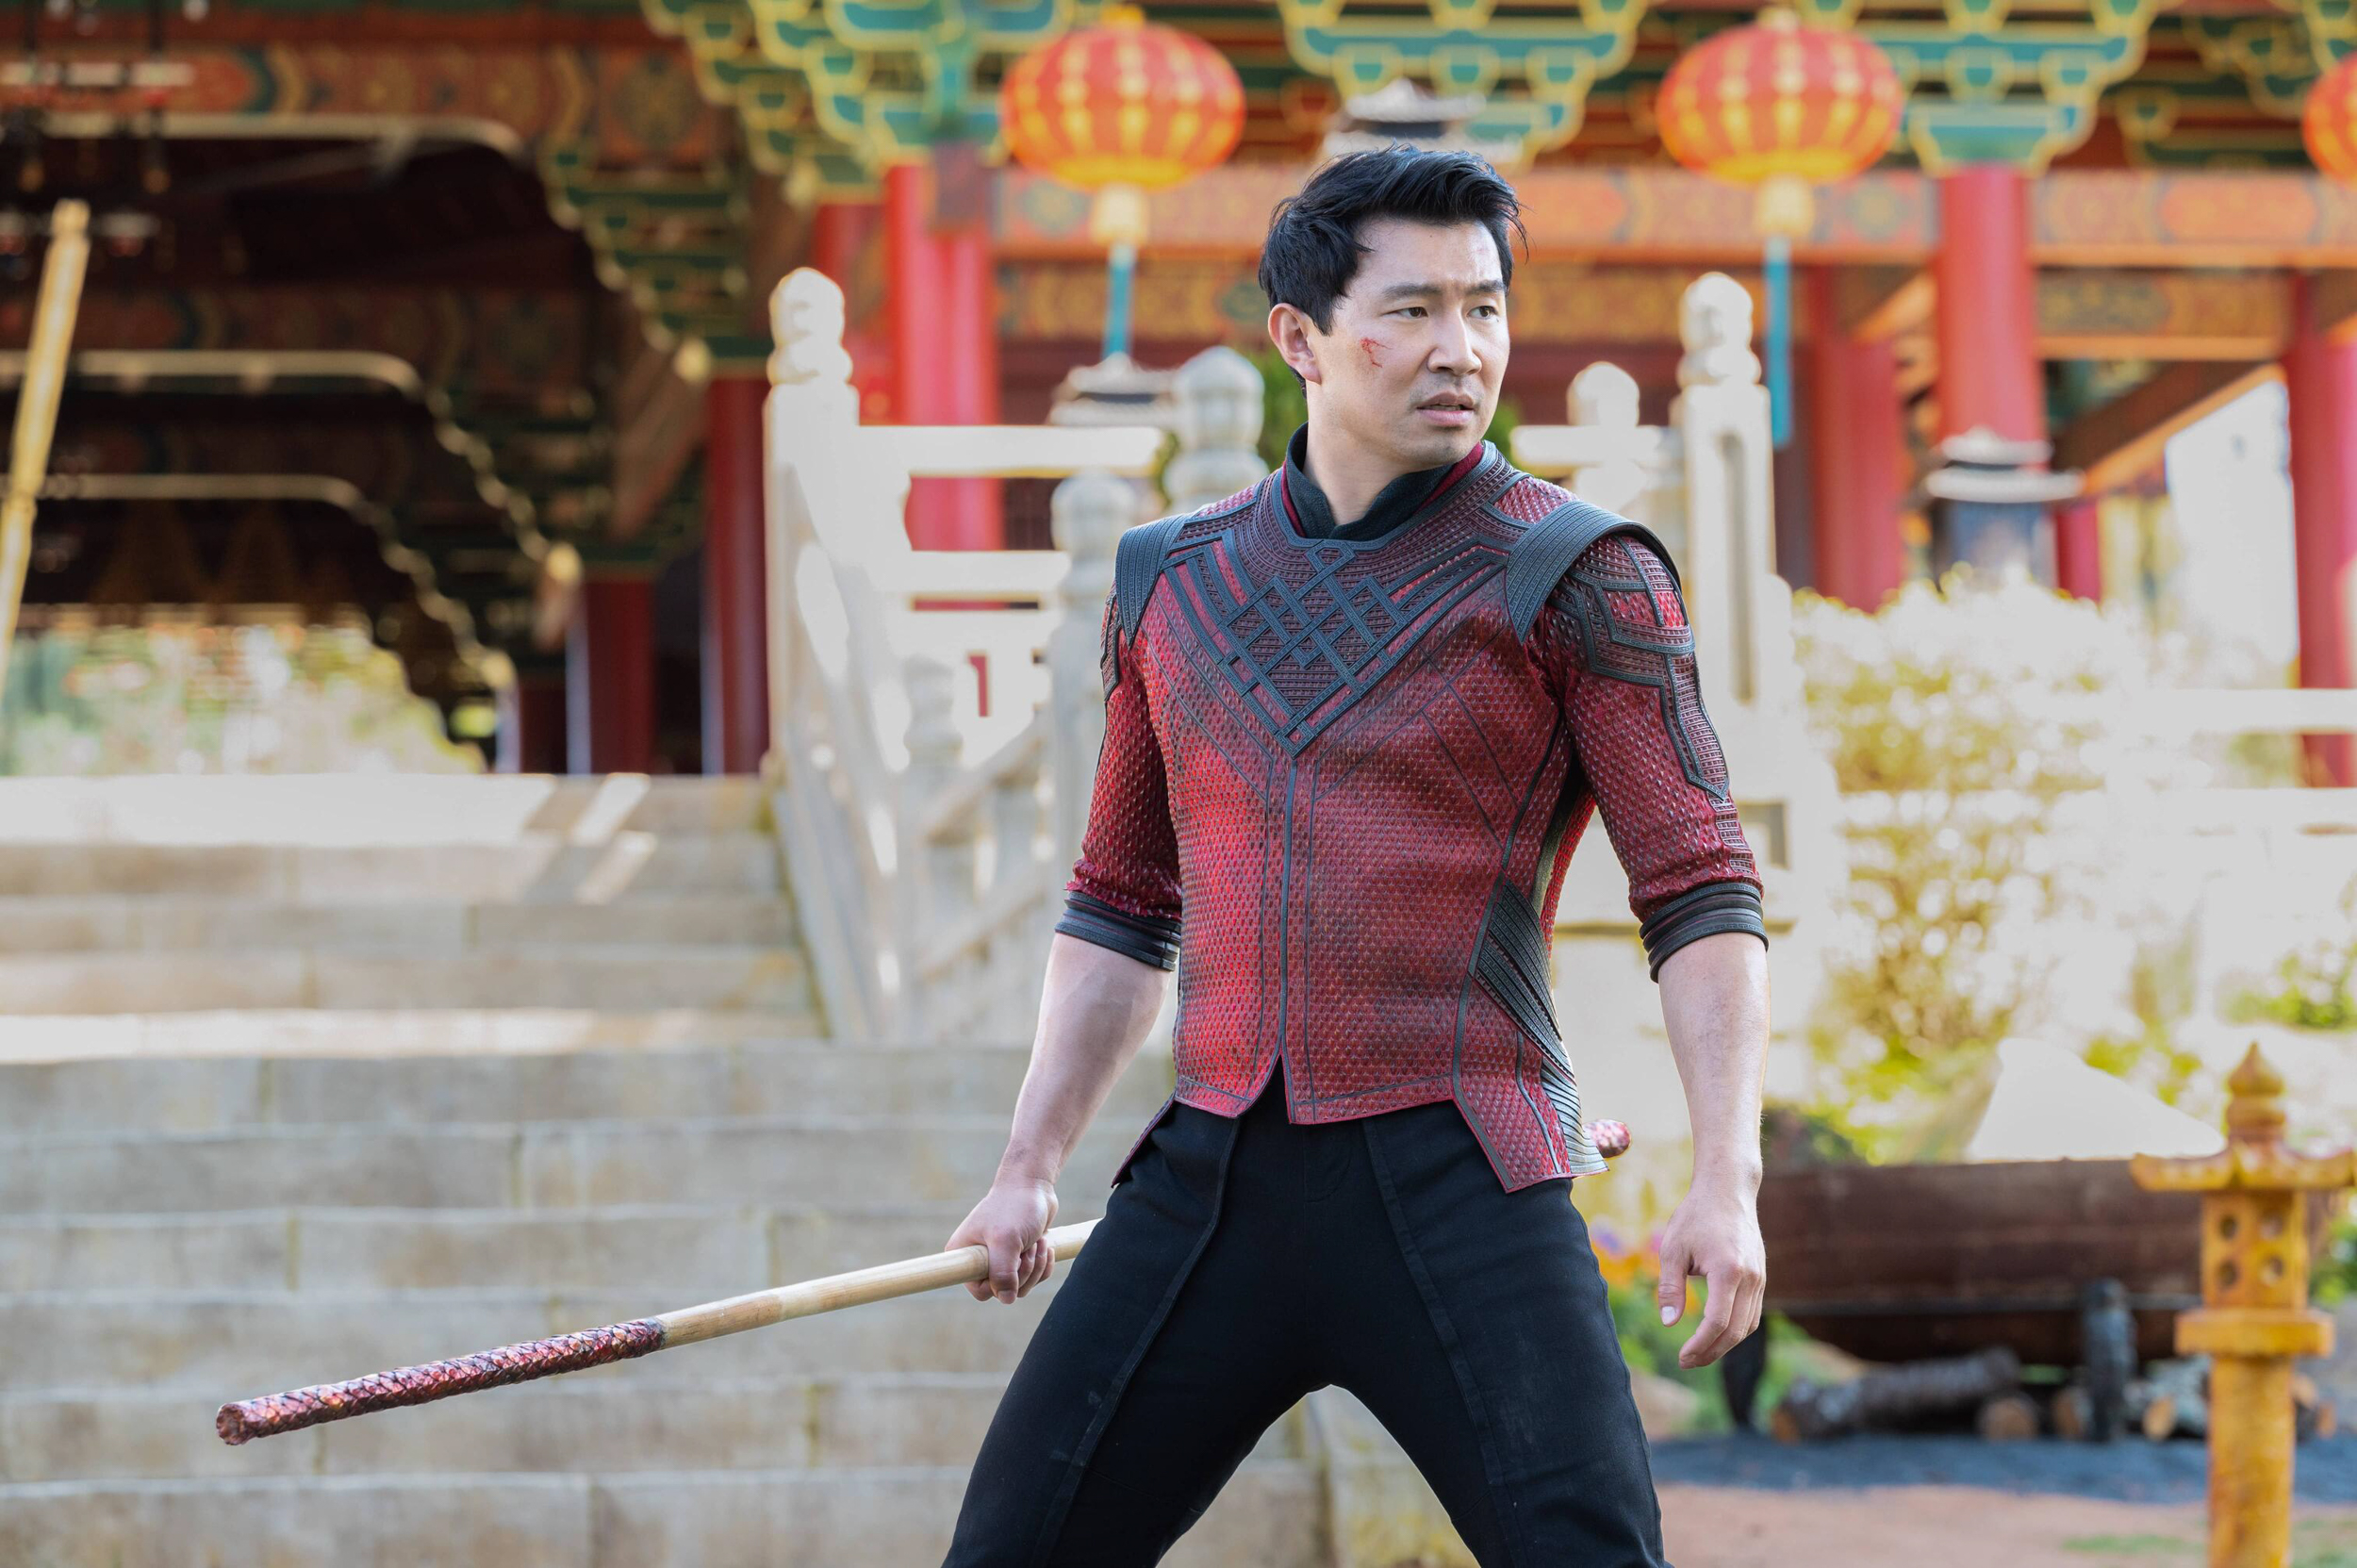 Liu's role as Shang-Chi puts him in the company of Marvel stars like Robert Downey Jr., Scarlett Johansson and all the Chrises (Courtesy of Jasin Boland/Marvel Studios 2021)